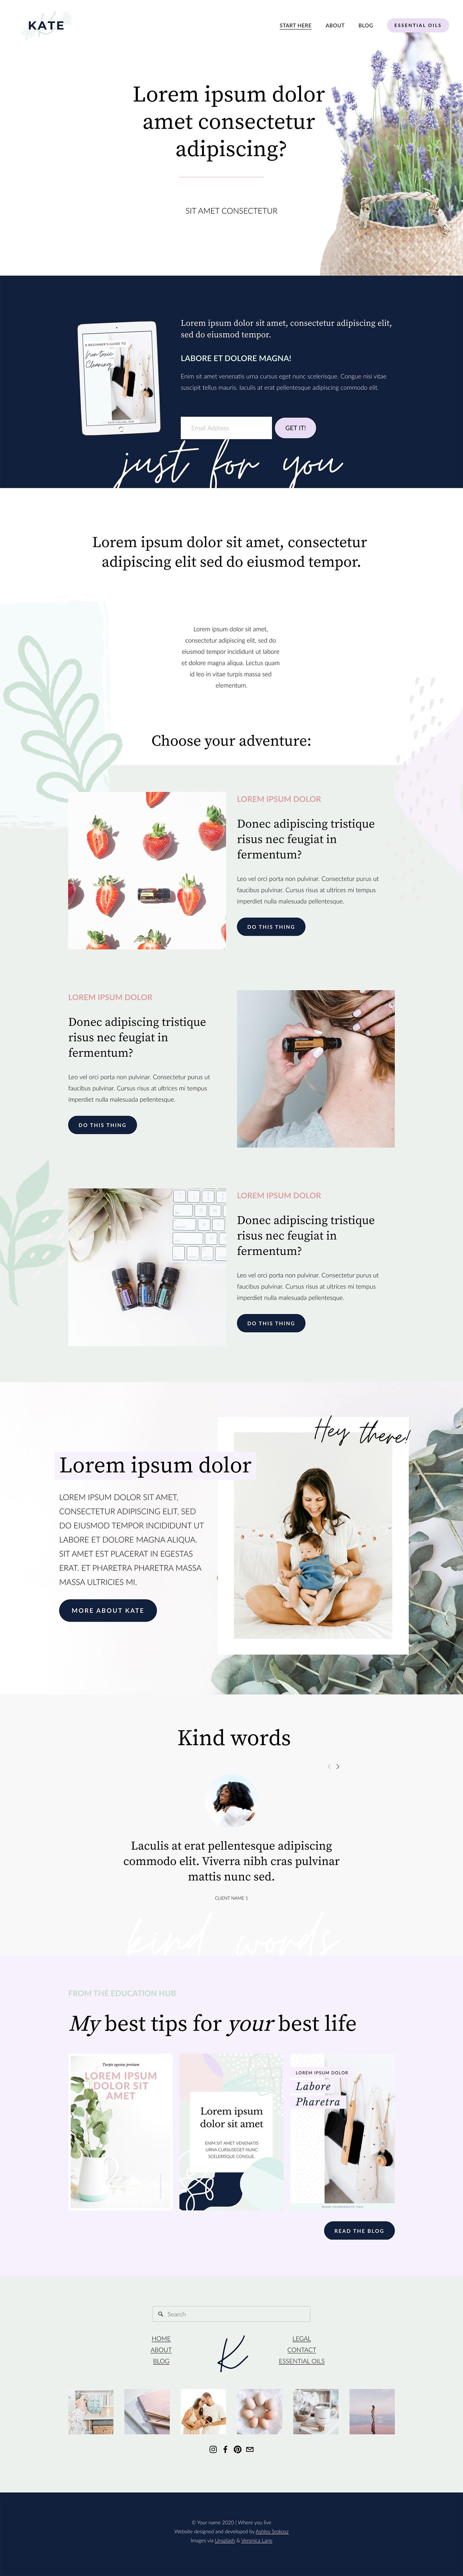 Squarespace 7.1 Template The Kate — Ashley Srokosz in